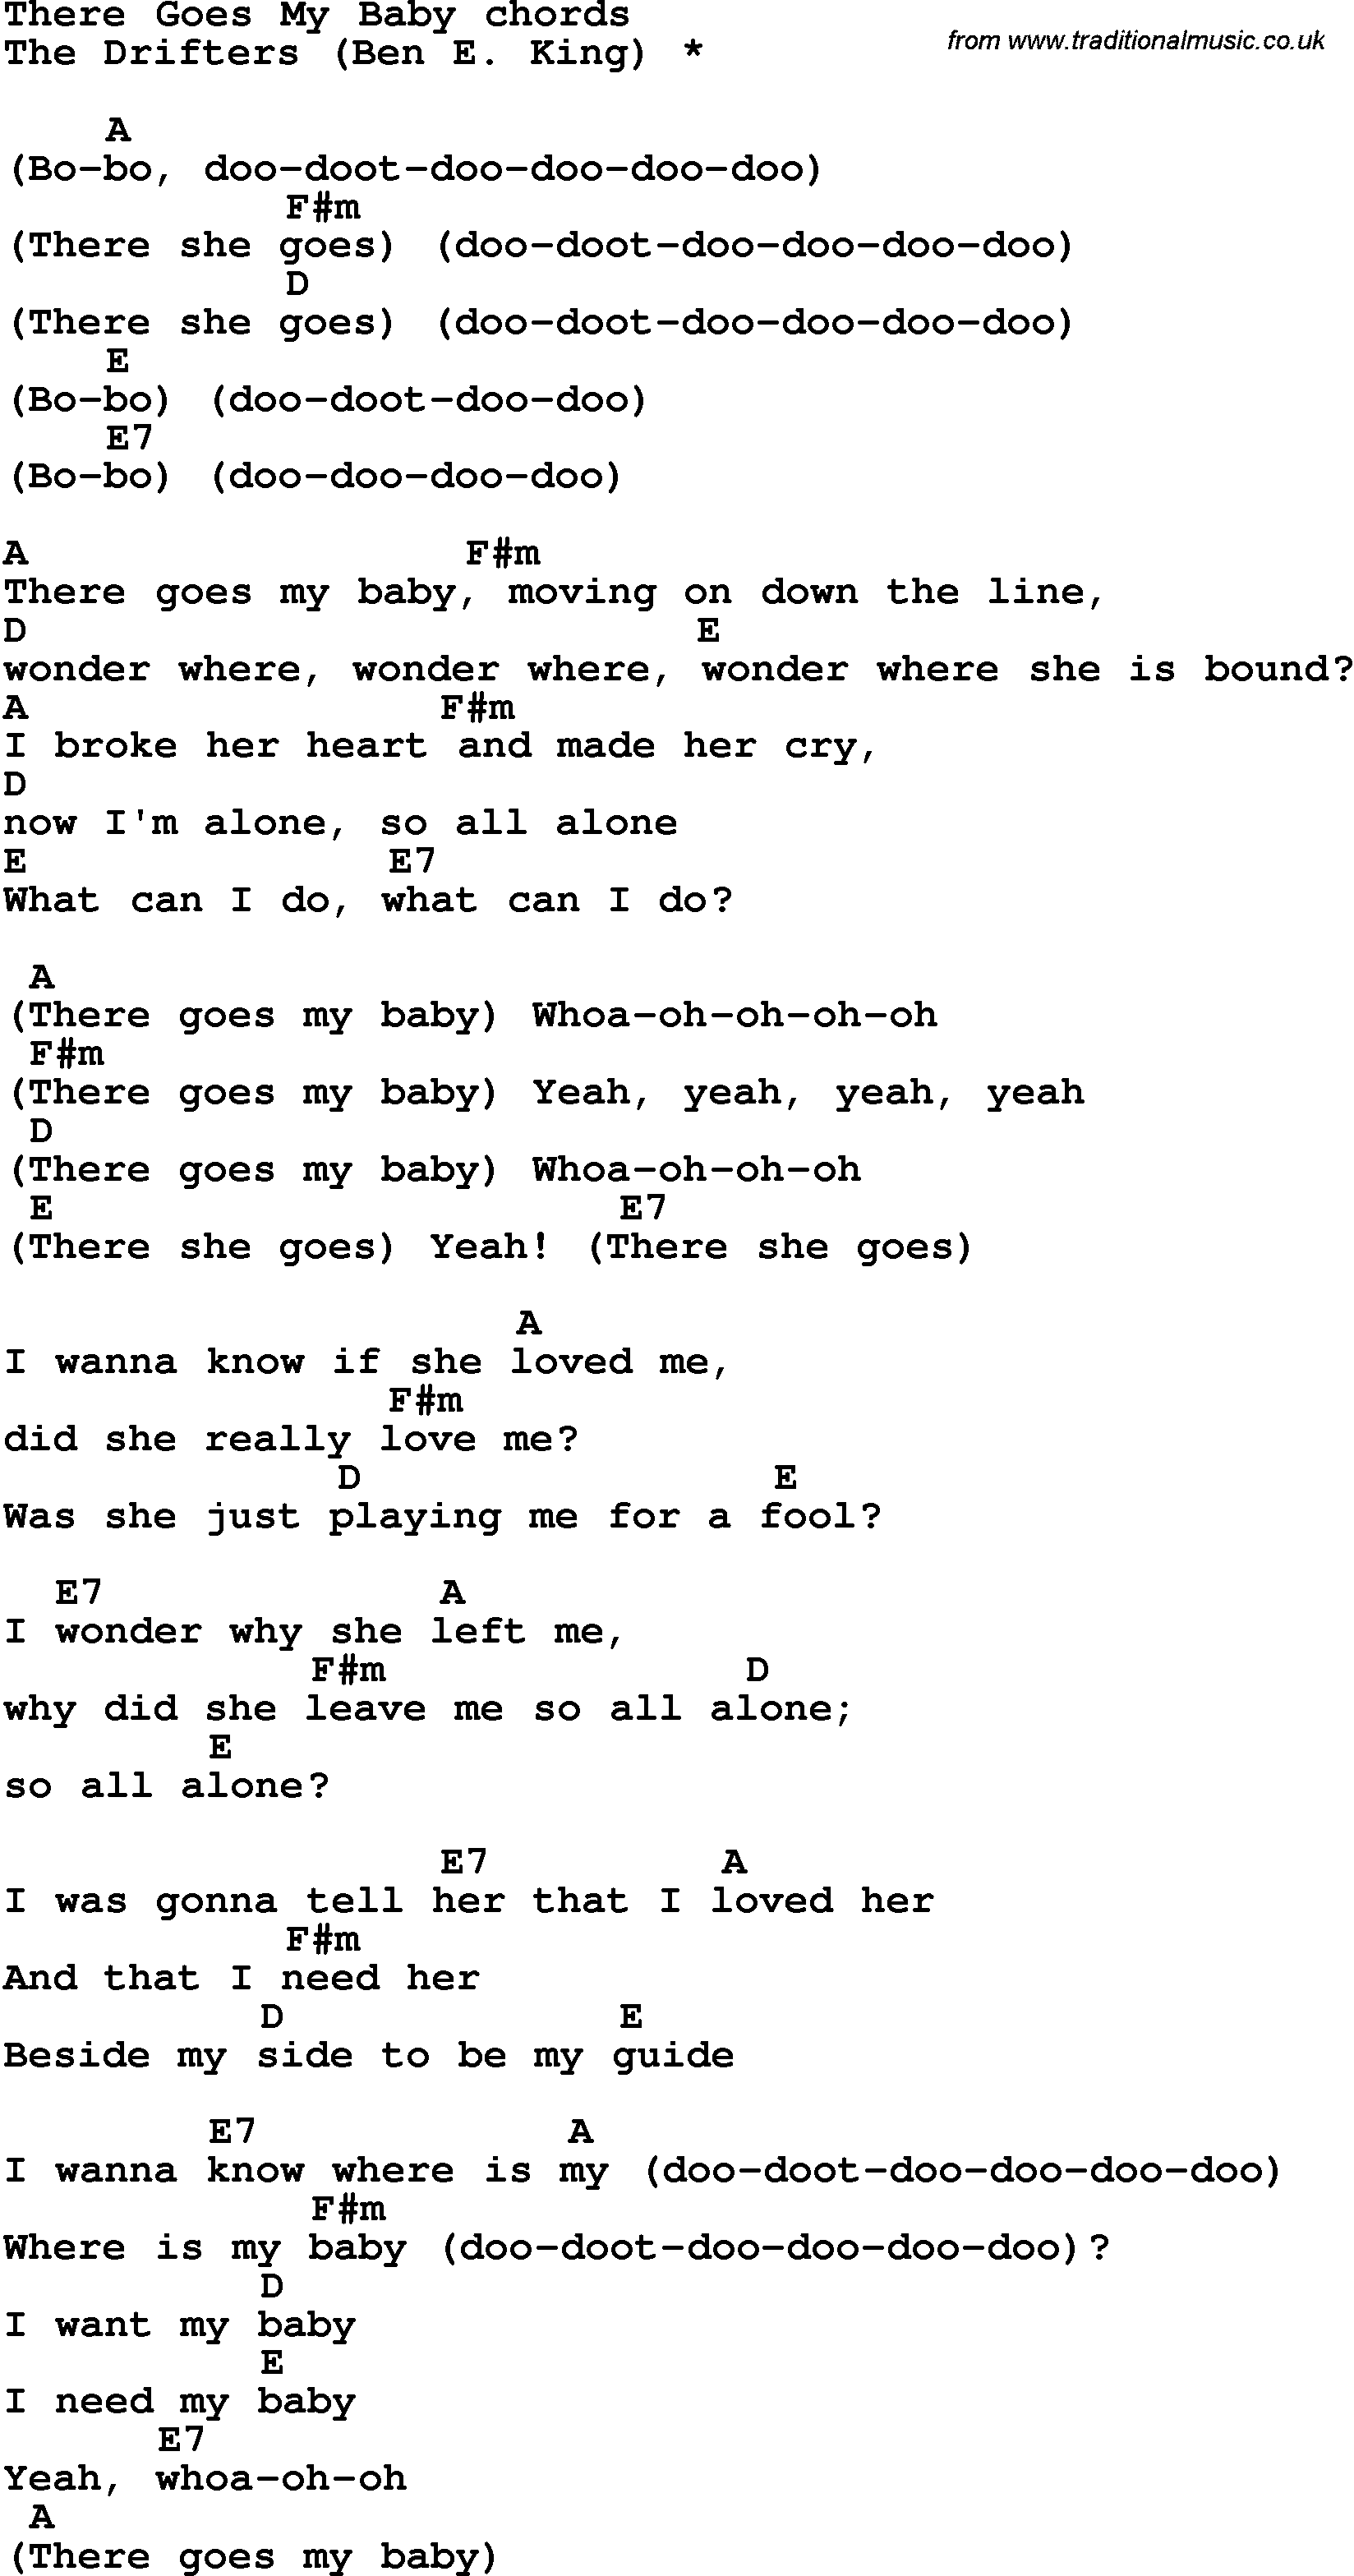 Song Lyrics With Guitar Chords For There Goes My Baby The Drifters